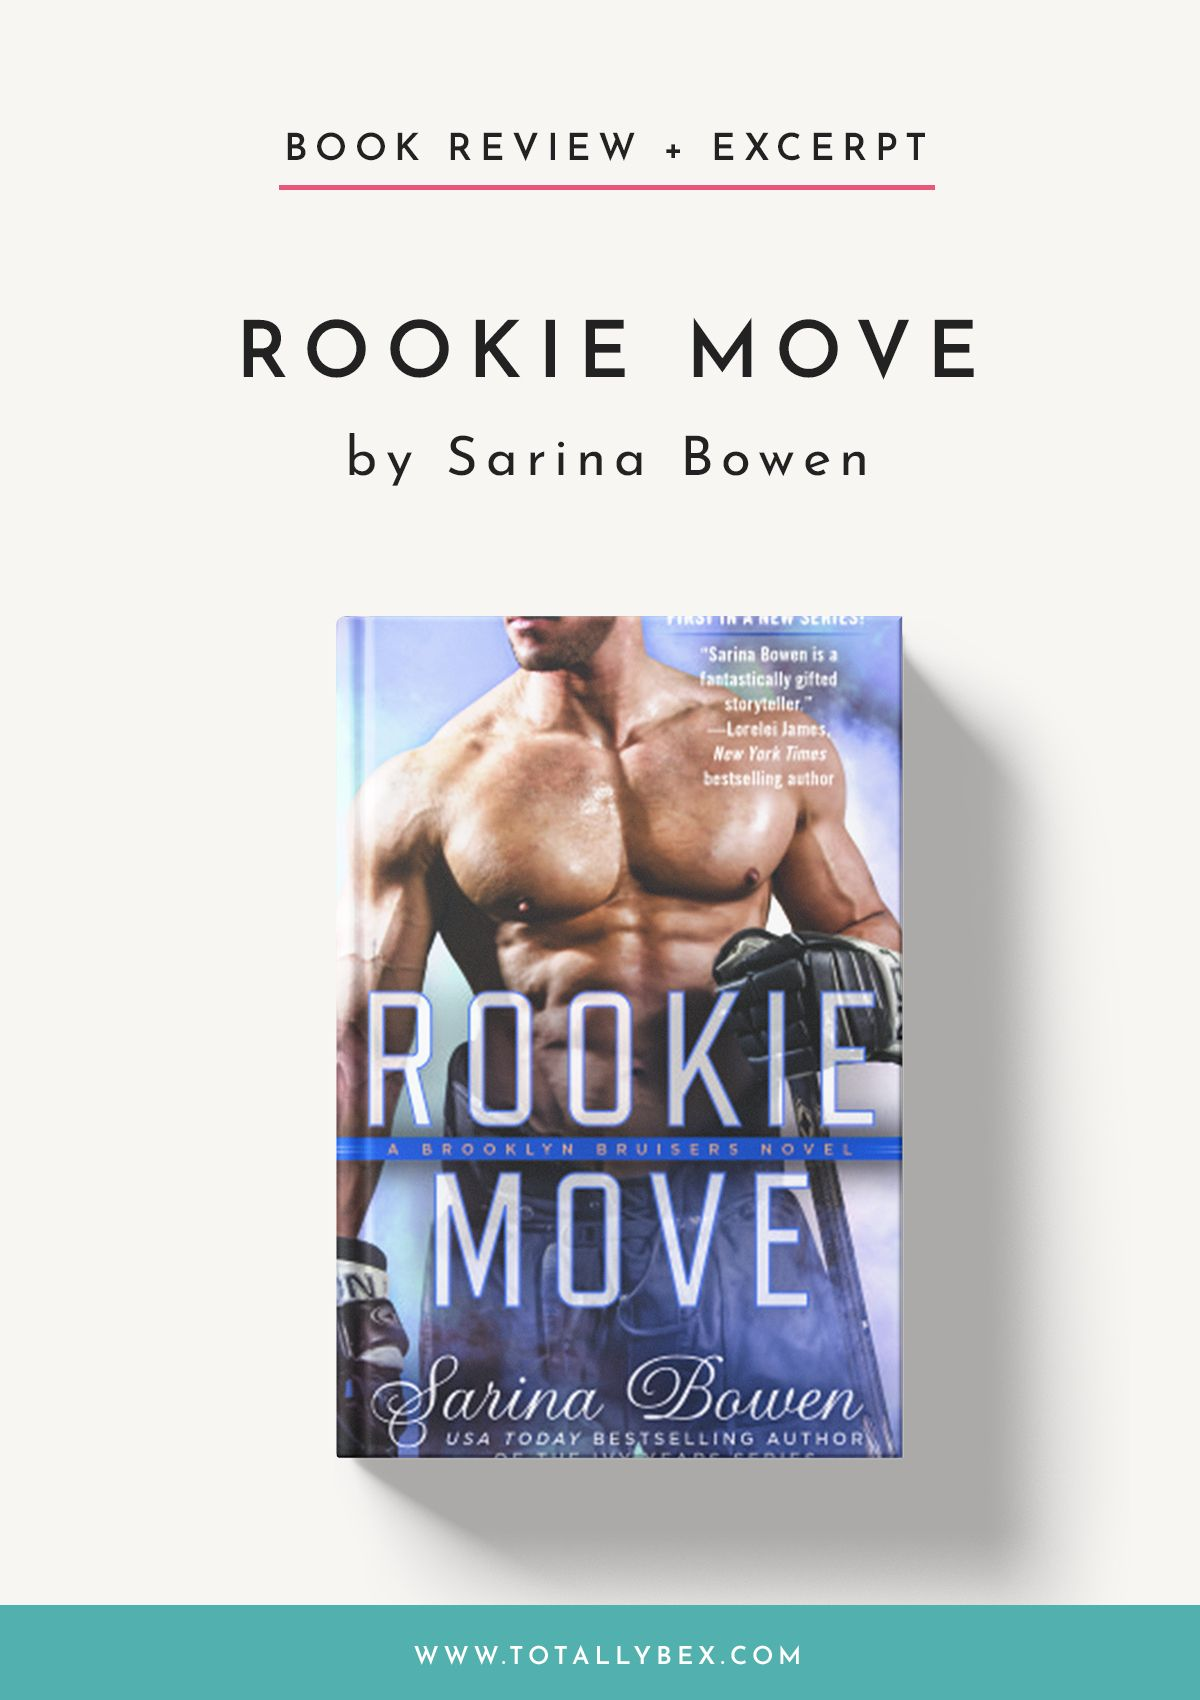 Rookie Move by Sarina Bowen Read My Review + an Excerpt